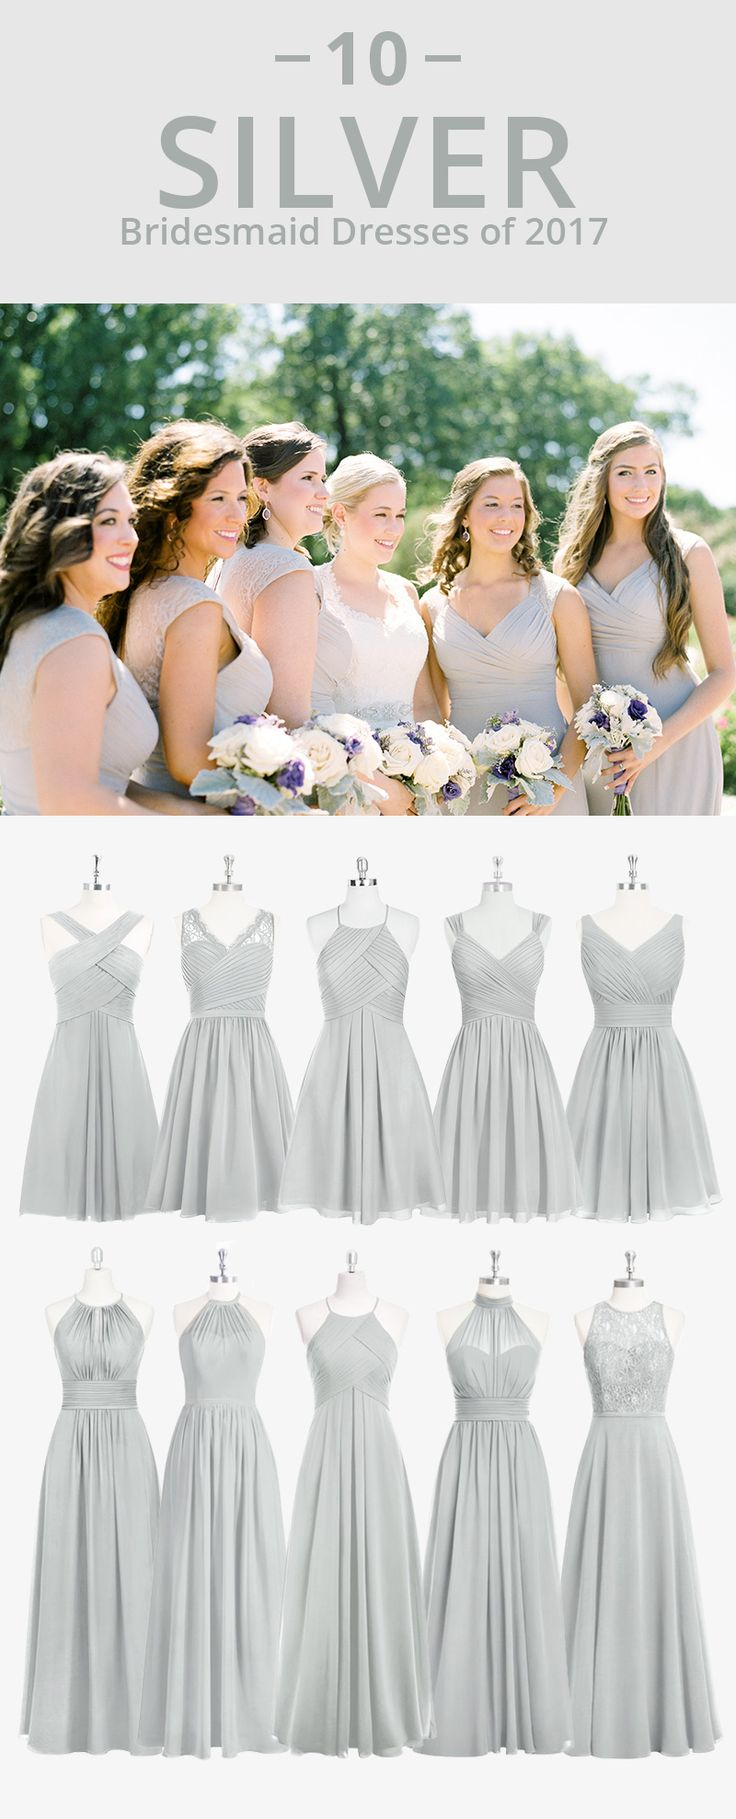 Dress your bridesmaid in this romantic soft purple! Available in sizes 0-30 and free custom sizing! Every woman deserves their dream dress, that fits right while still being budget friendly! Photo by Amanda Adams Photography.